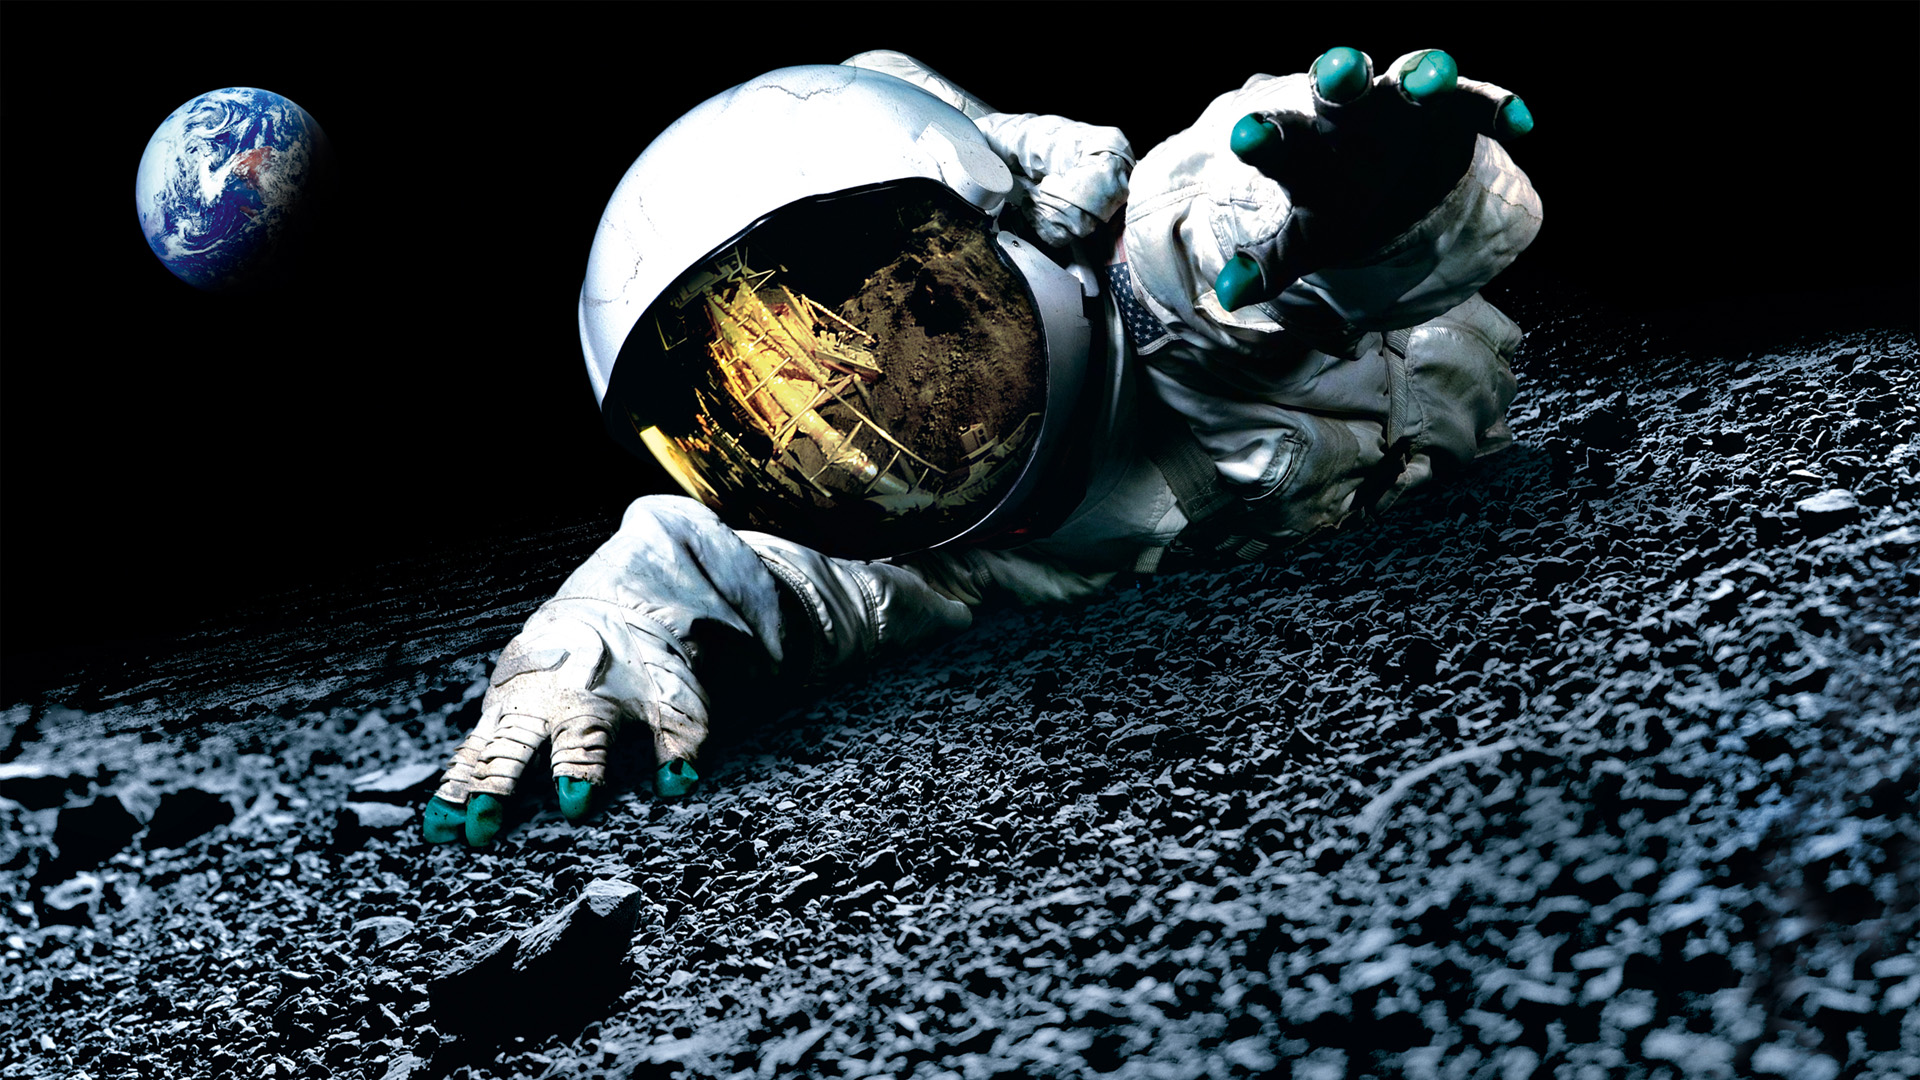 astronaut lost in space wallpaper - photo #15